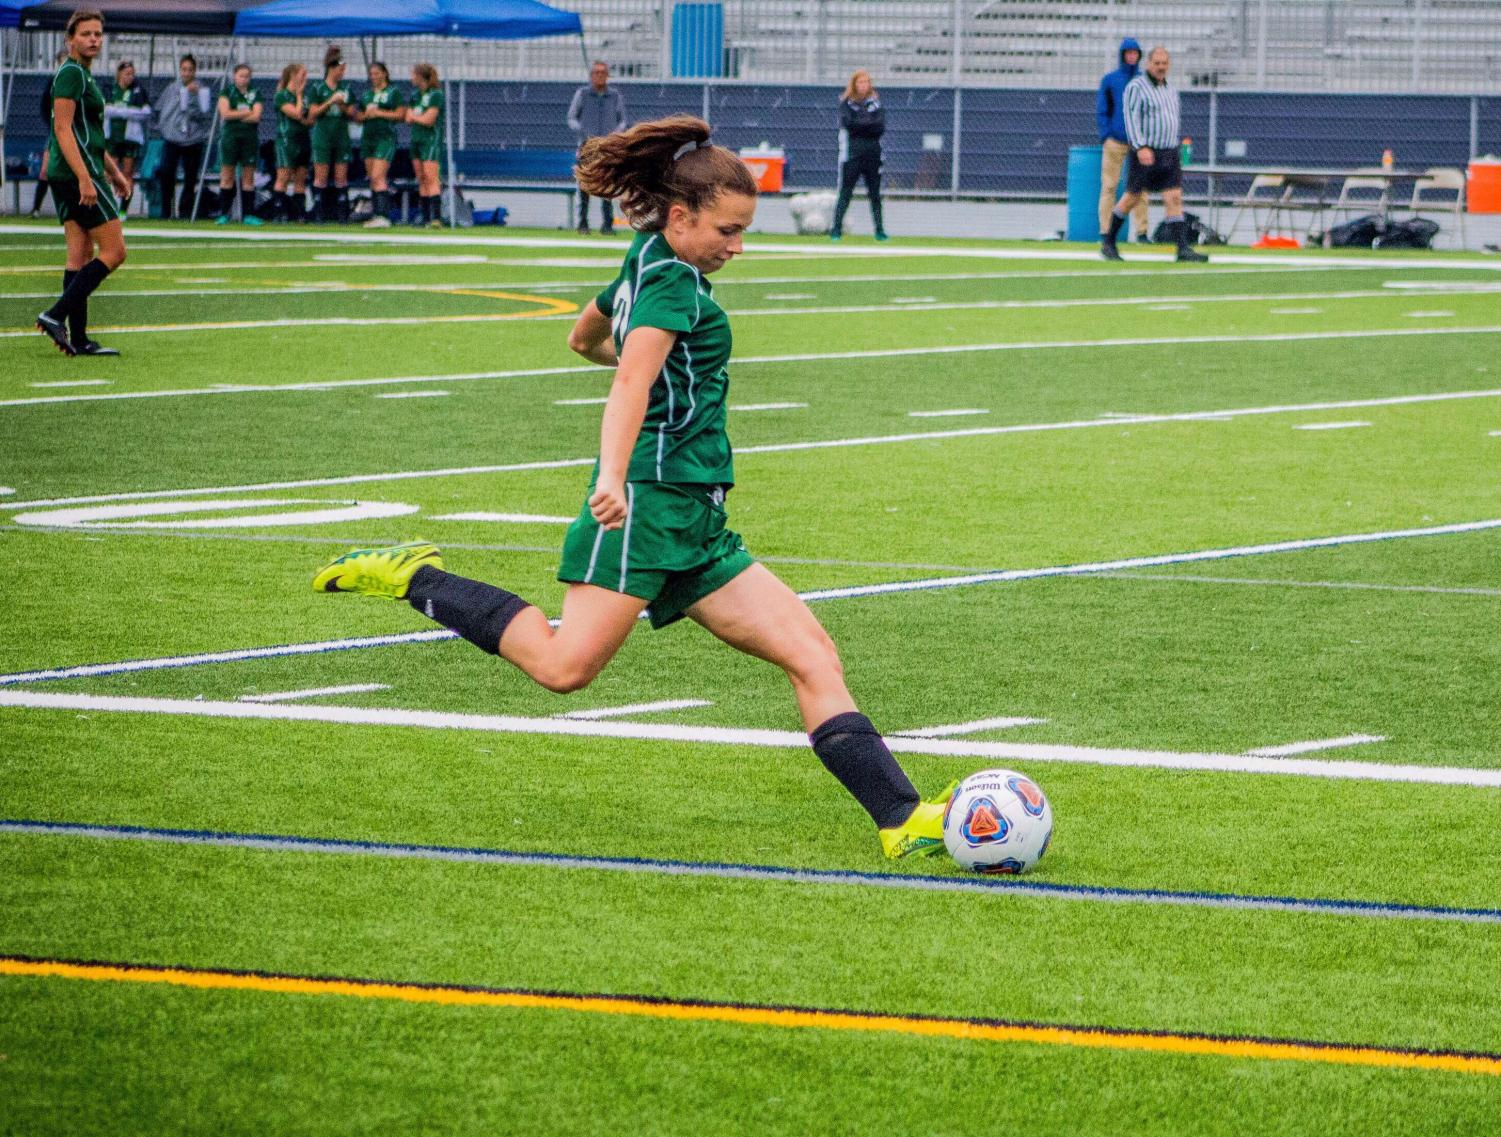 One of the strikers of Girls' Varsity Soccer, Addy Crouse (9), was a strong attribute to the team before becoming afflicted with a concussion during a game against Greencastle